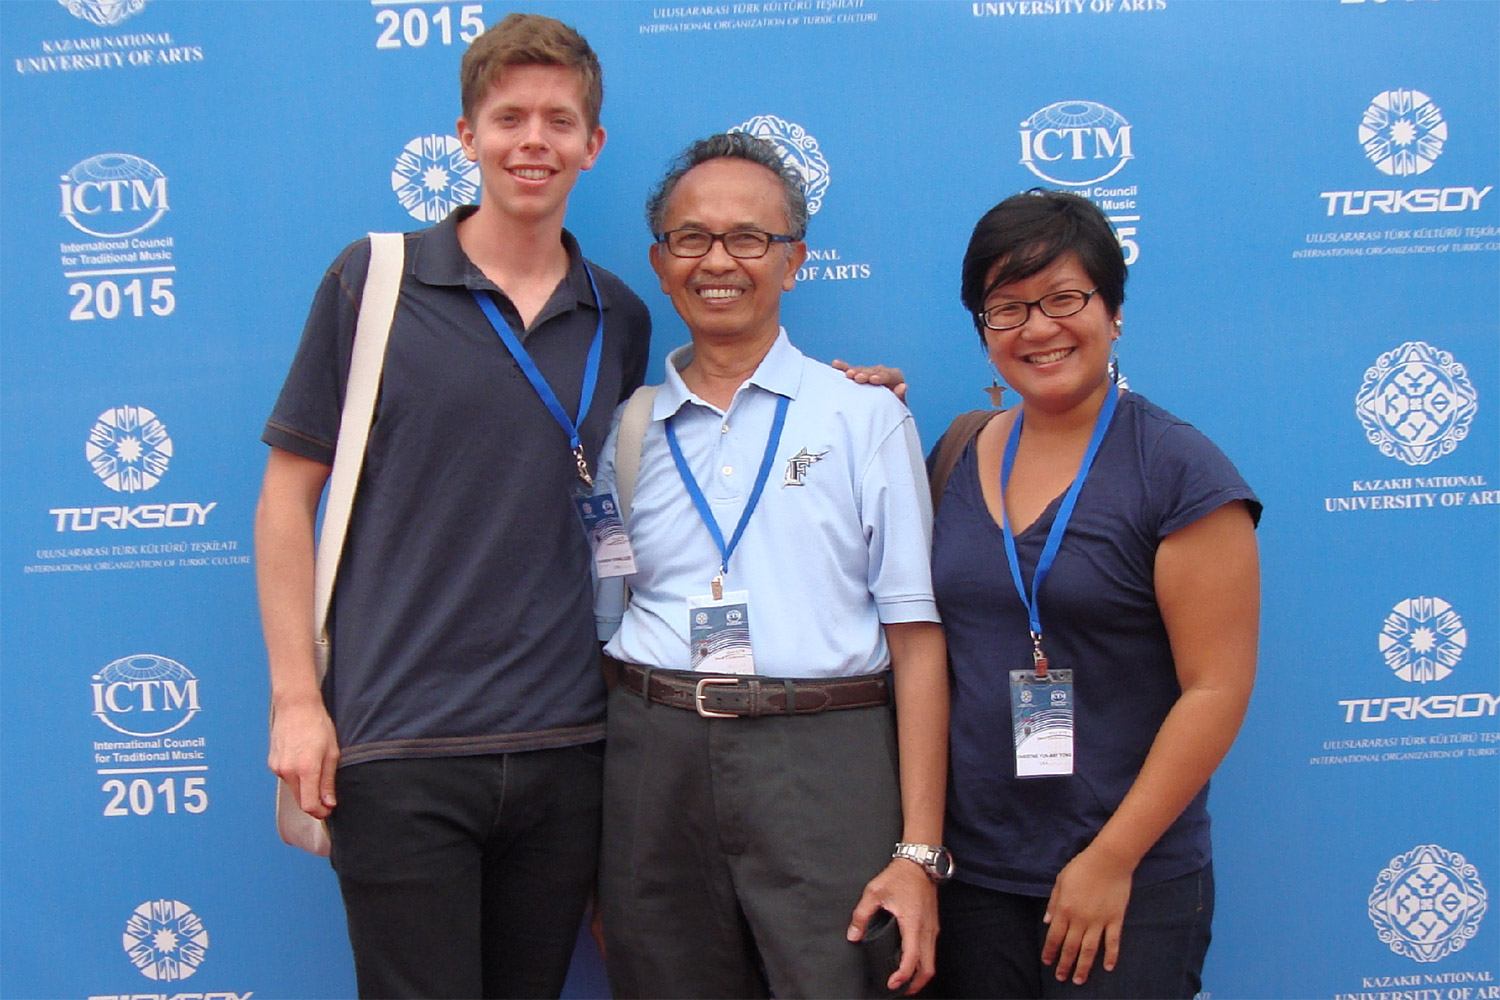 PhD candidate Ander Terwilliger, University Professor of Music Sumarsam and PhD candidate Christine Yong attended the International Council for Traditional Music conference in Astana, Kazakhstan.